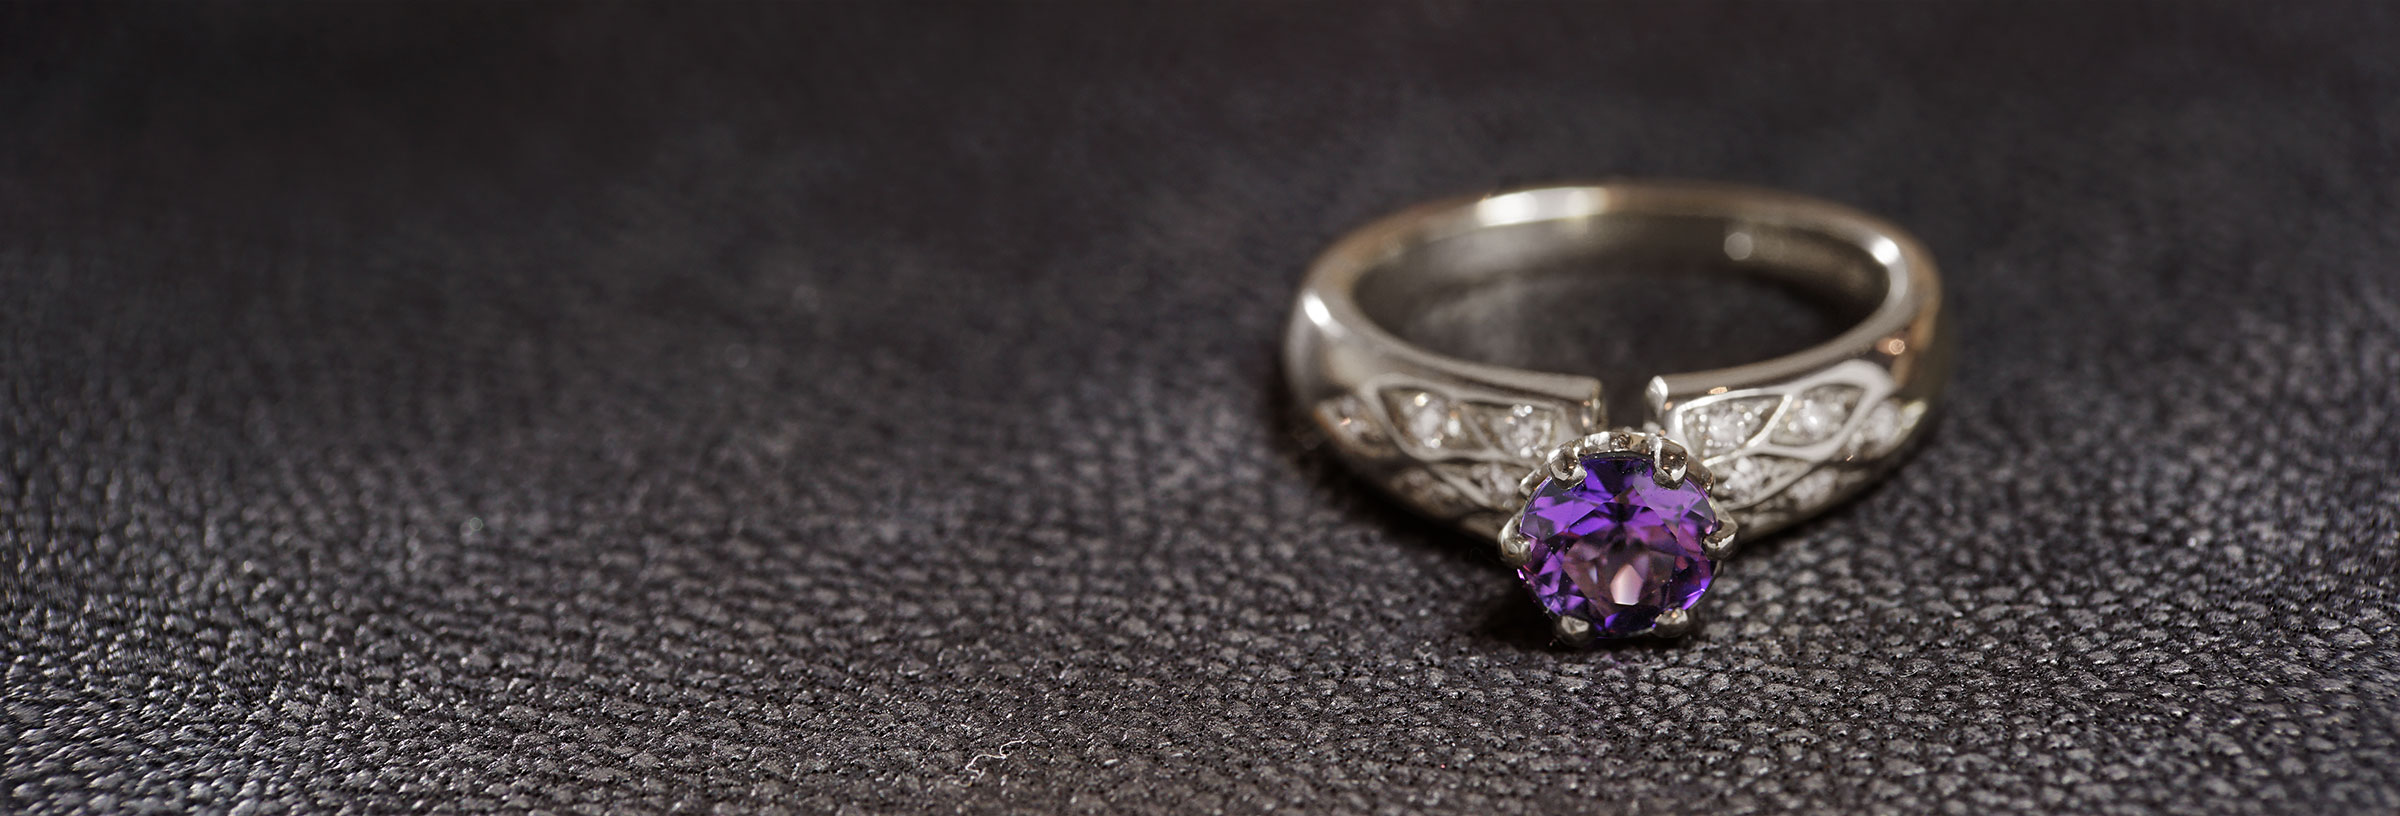 Fairtrade-9-carat-white-gold-amethyst-and-diamond-patterned-ring